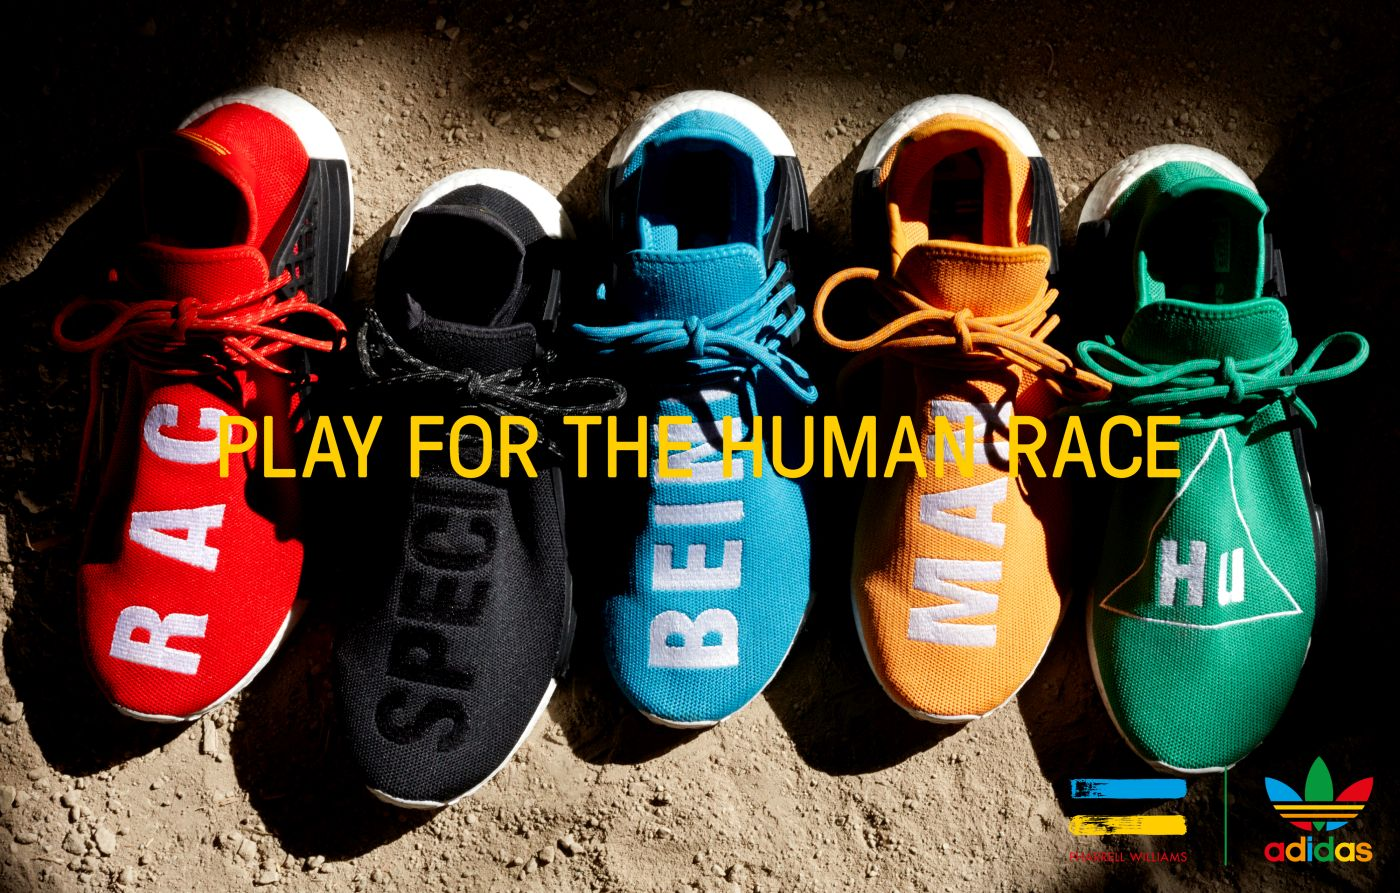 Pharrell Williams x adidas Hu collection release